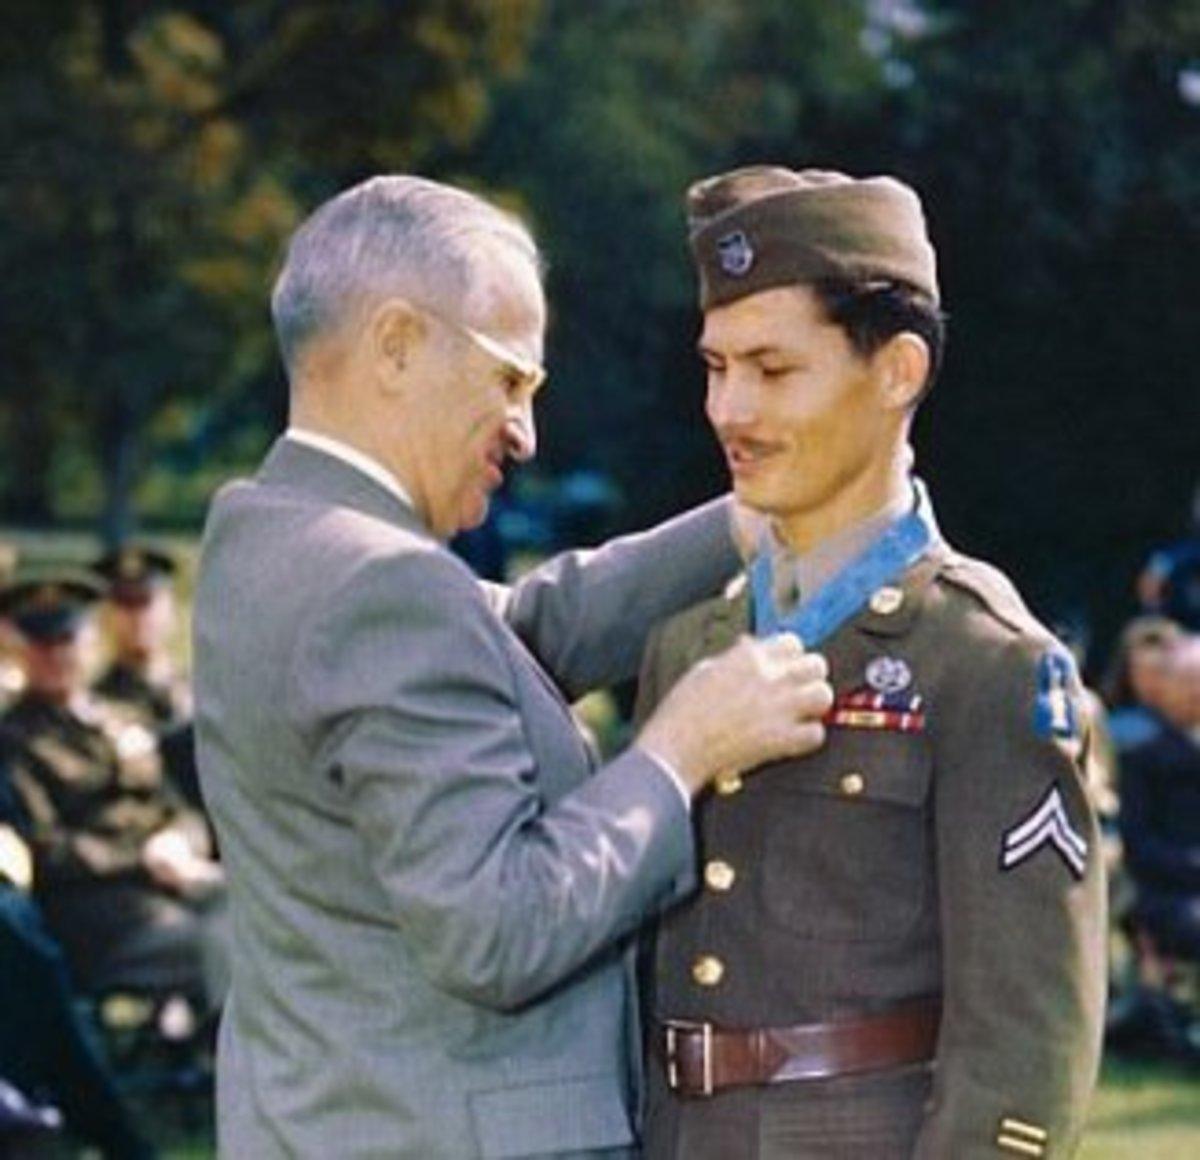 Desmond Doss being awarded Medal of Honor